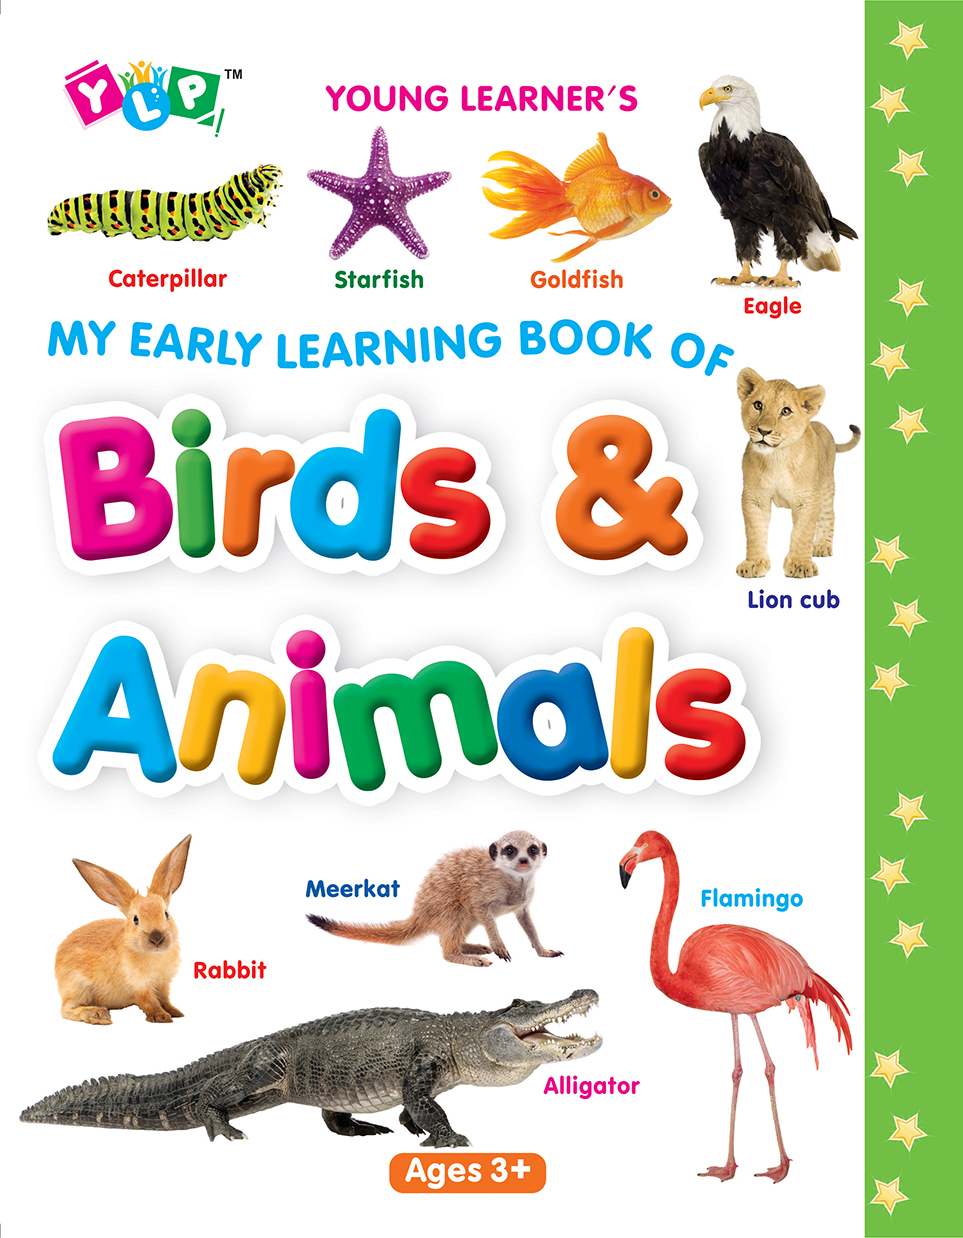 My Early Learning Book of Birds & Animals (Full Laminated)